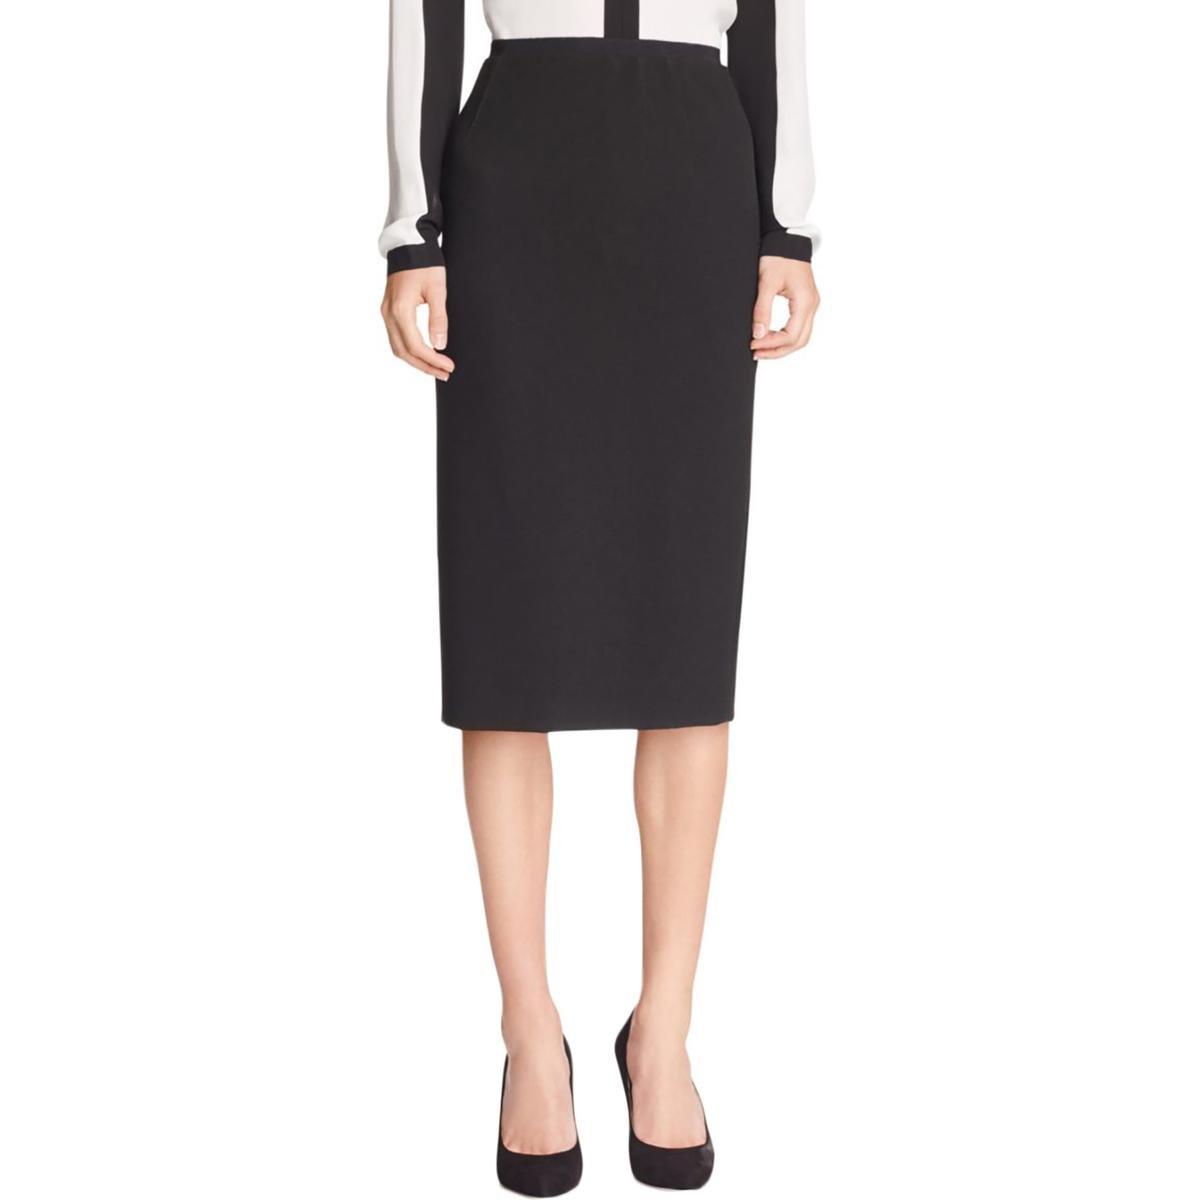 Elie Tahari Womens Beatrice Knee-Length Stretch Pencil Skirt Black 14